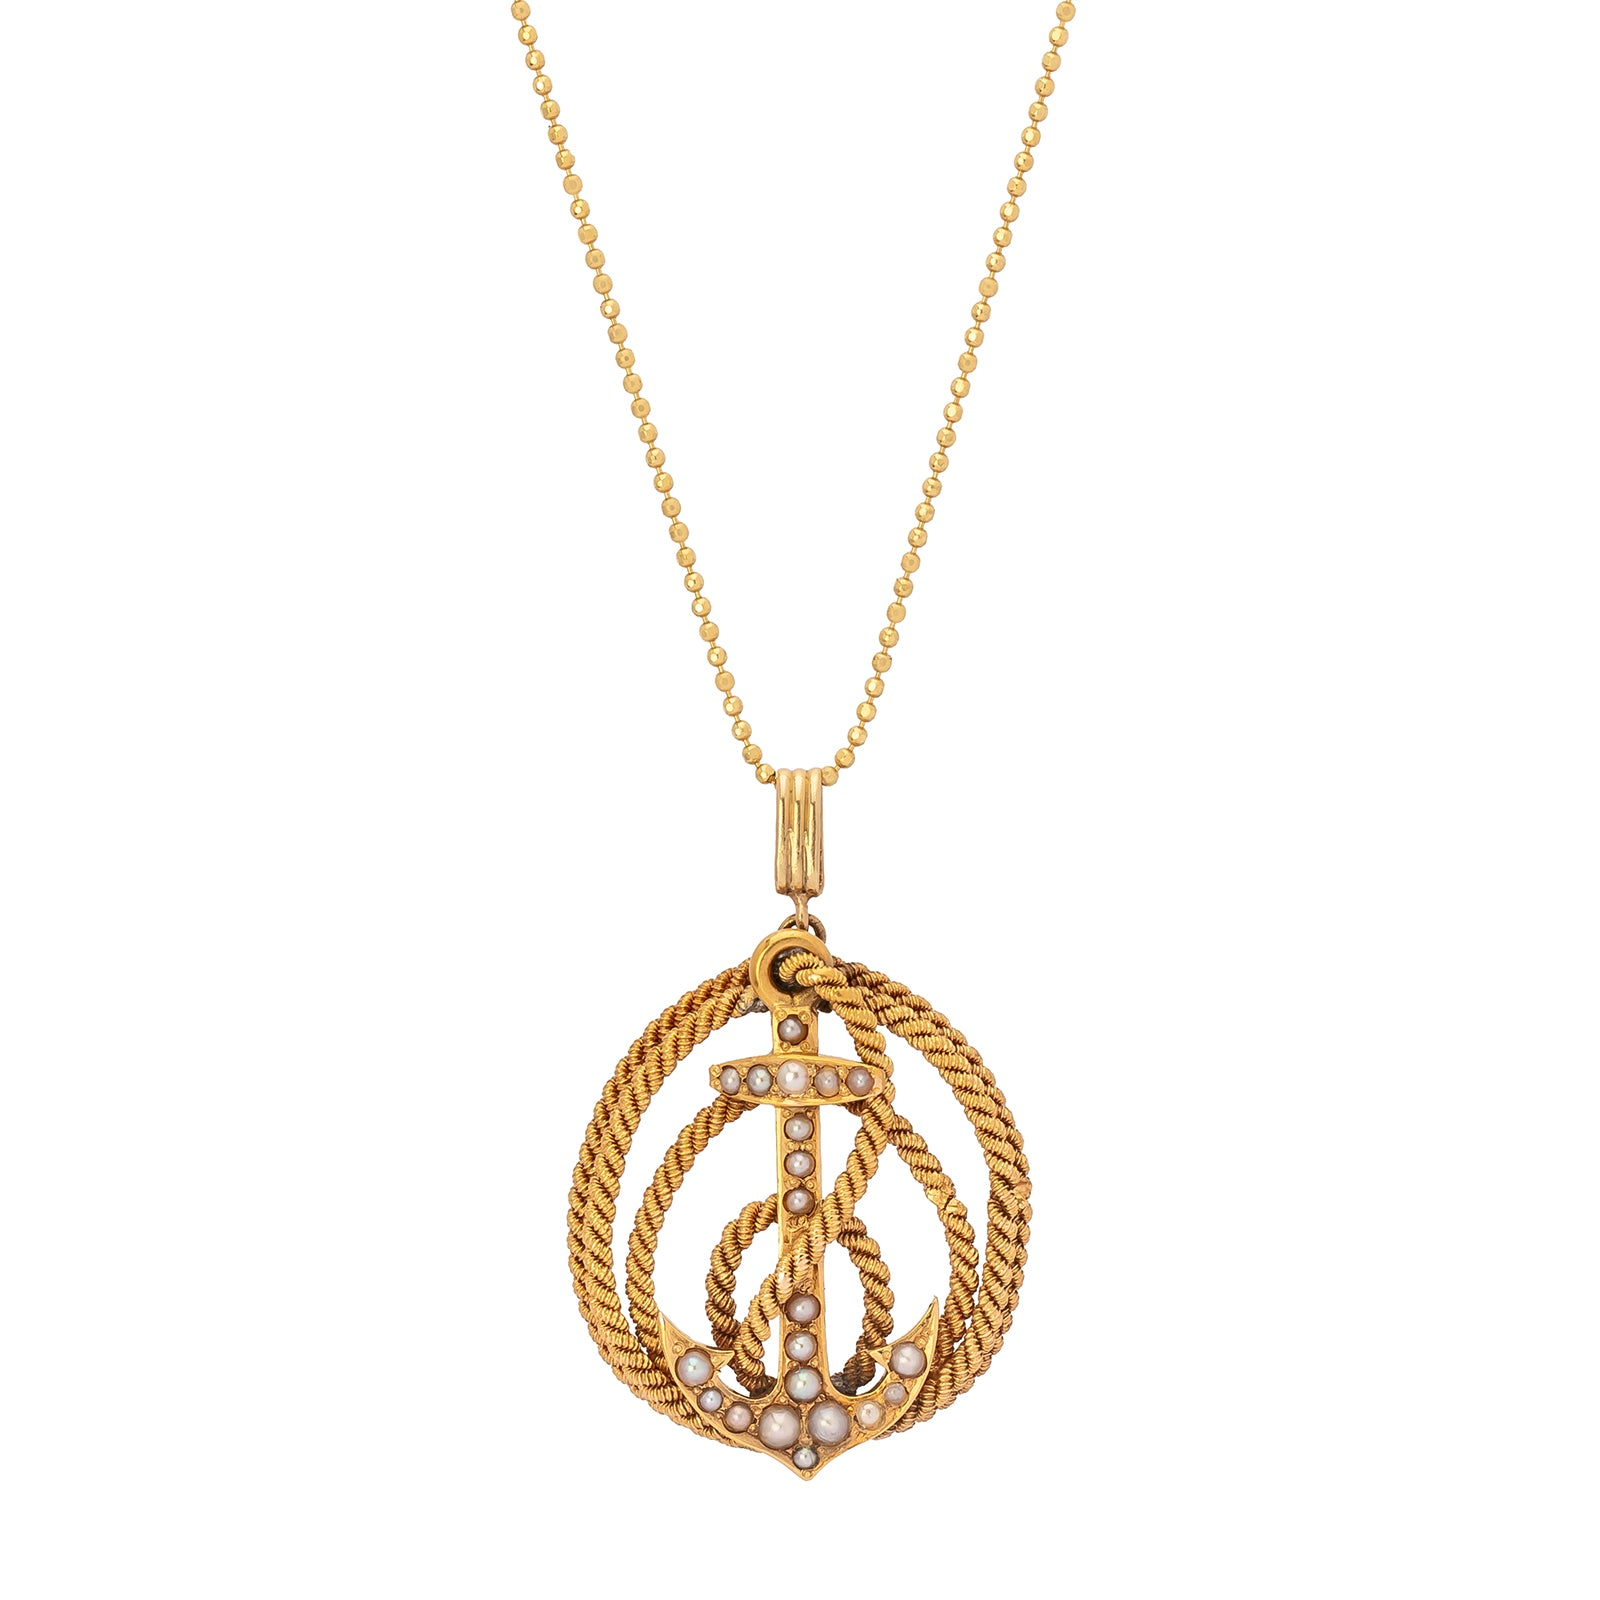 Antique & Vintage Jewelry Coiled Gold Rope Pendant - Charms & Pendants - Broken English Jewelry